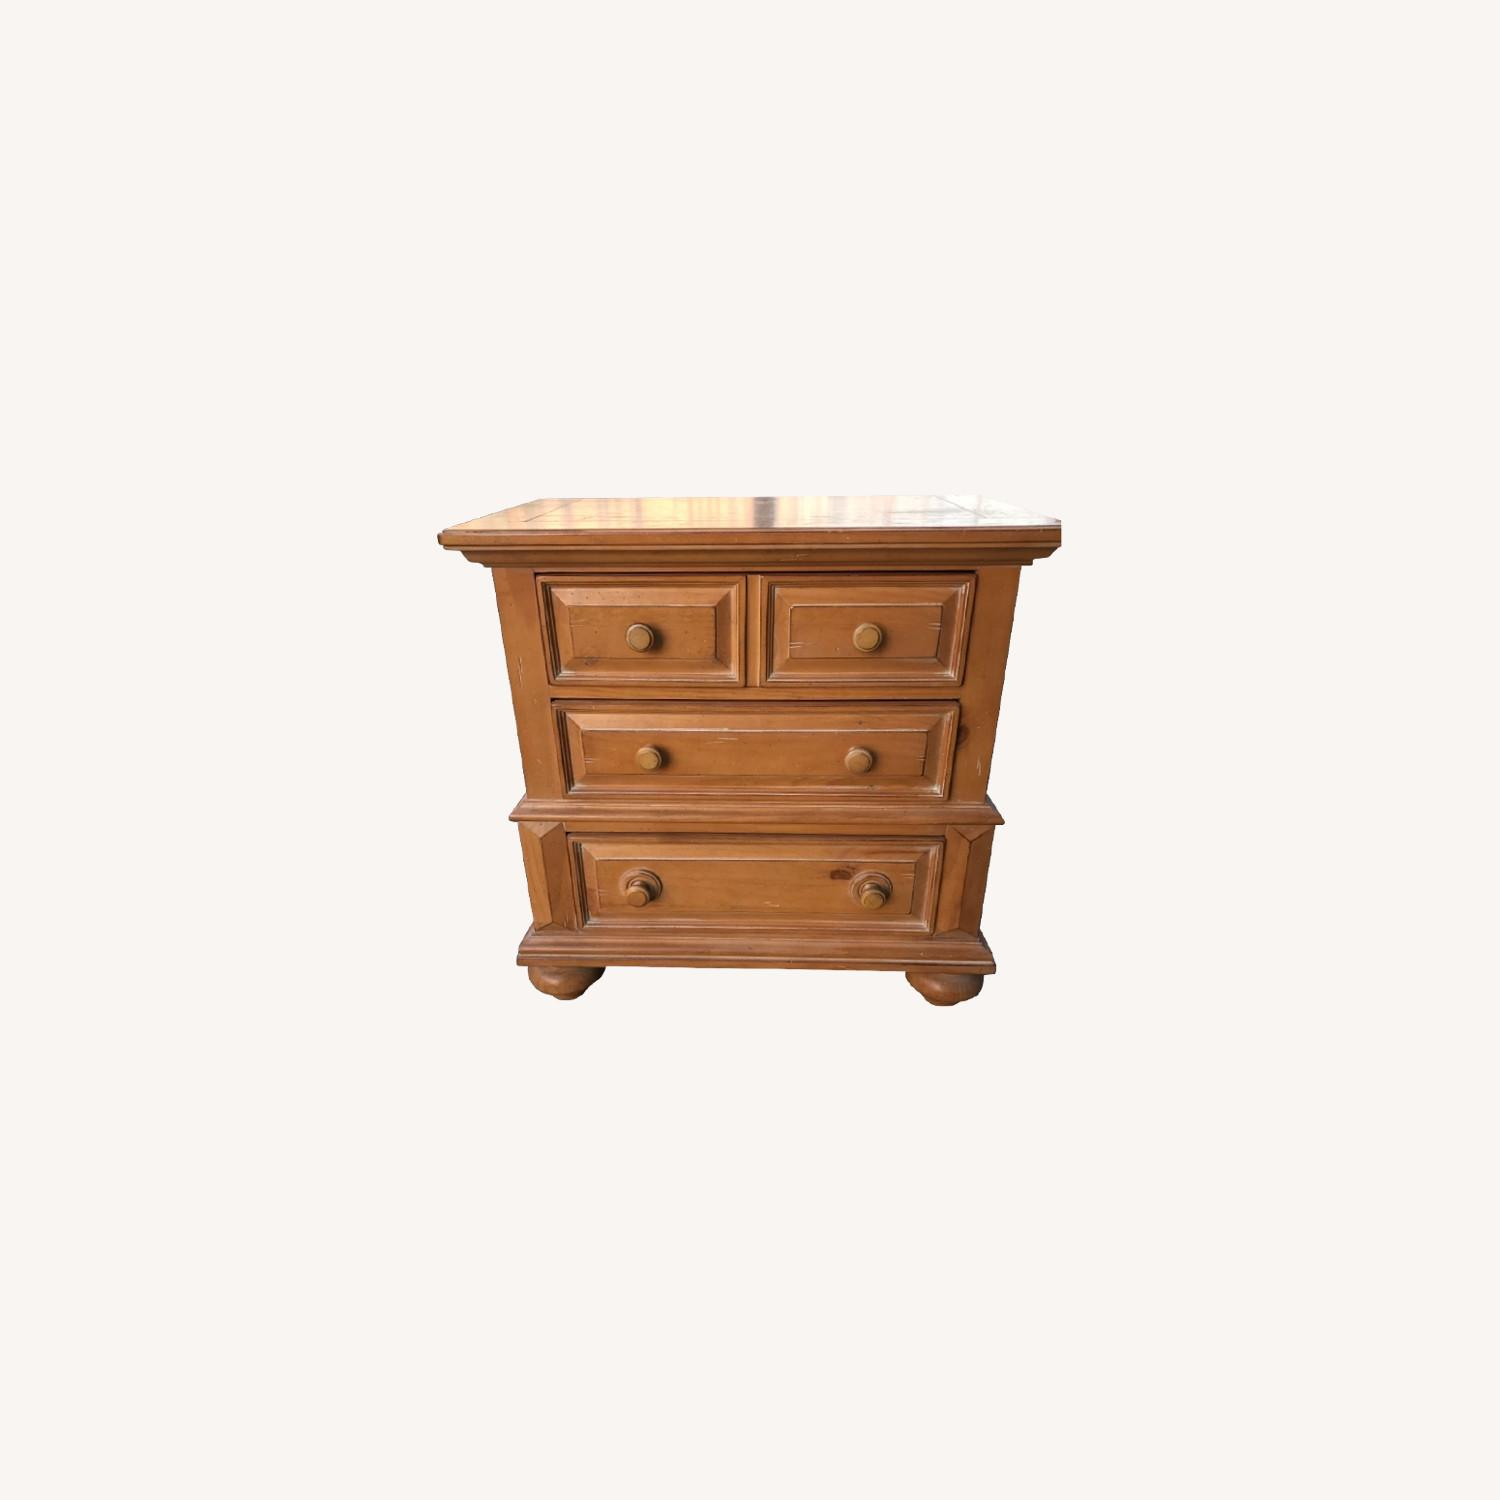 Broyhill Furniture Solid Wood Nightstand - image-0